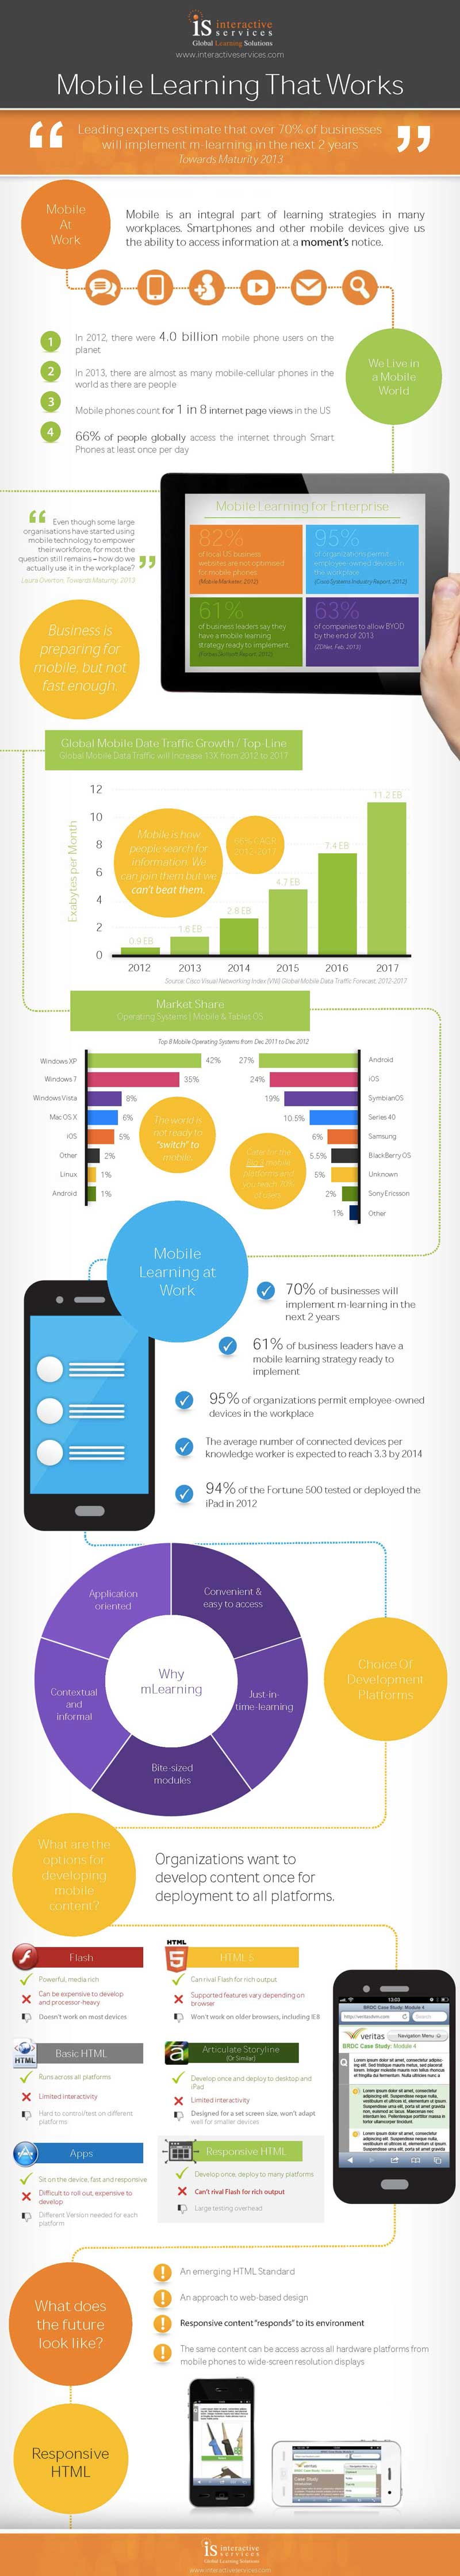 Mobile Learning That Works Infographic 2013 Web